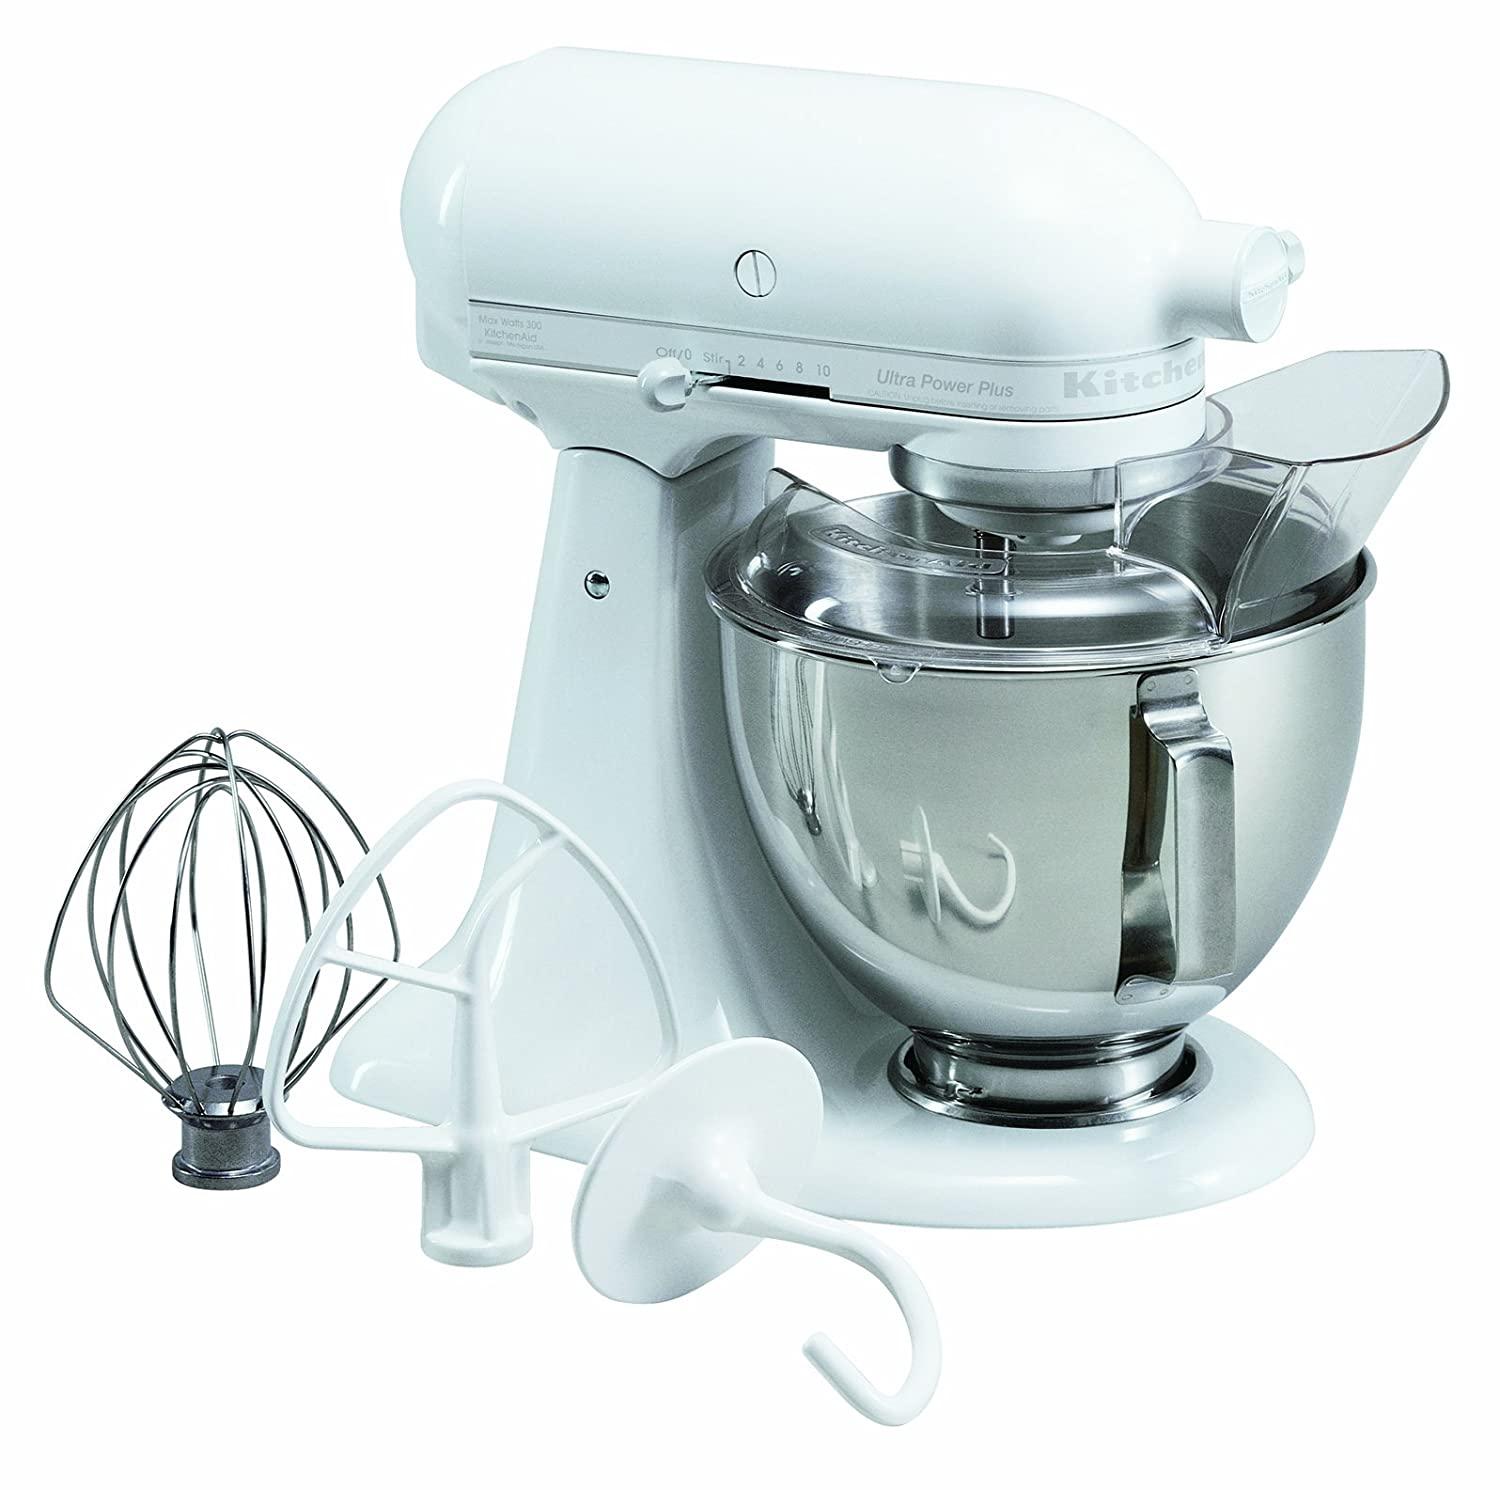 Amazon.com: KitchenAid KSM100PSWW Ultra Power Plus 4-1/2-Quart Stand ...